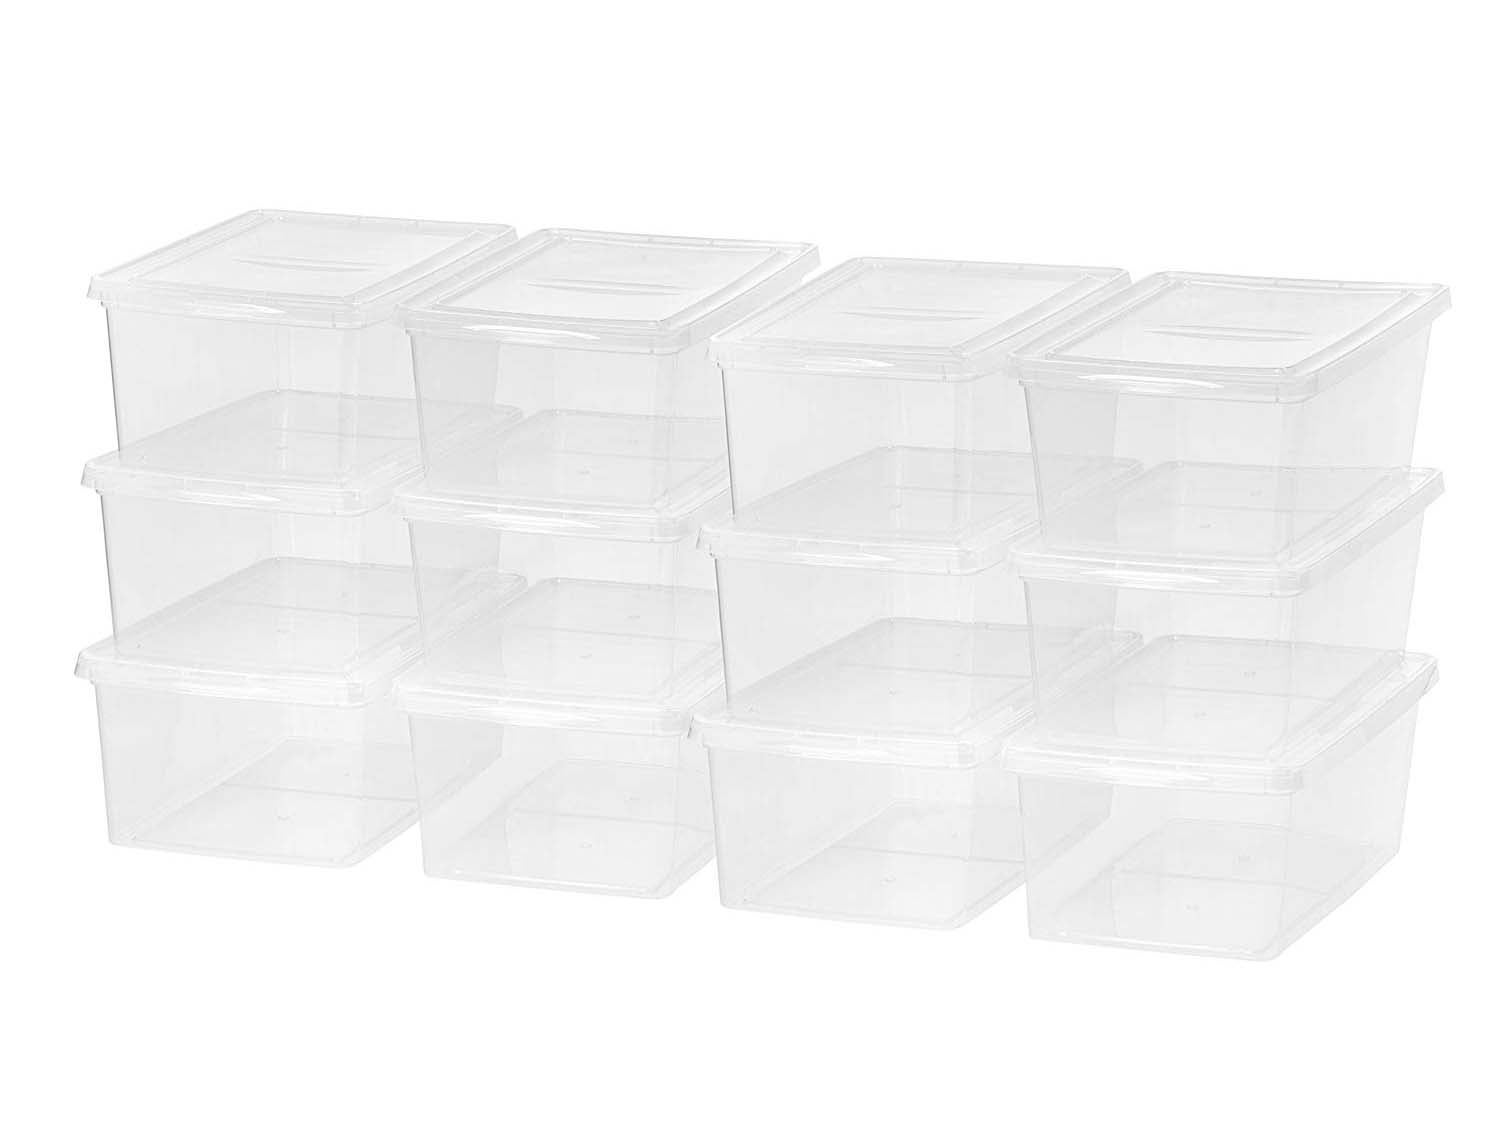 IRIS USA CNL-17 17 Quart Clear Storage Box, 12 Pack